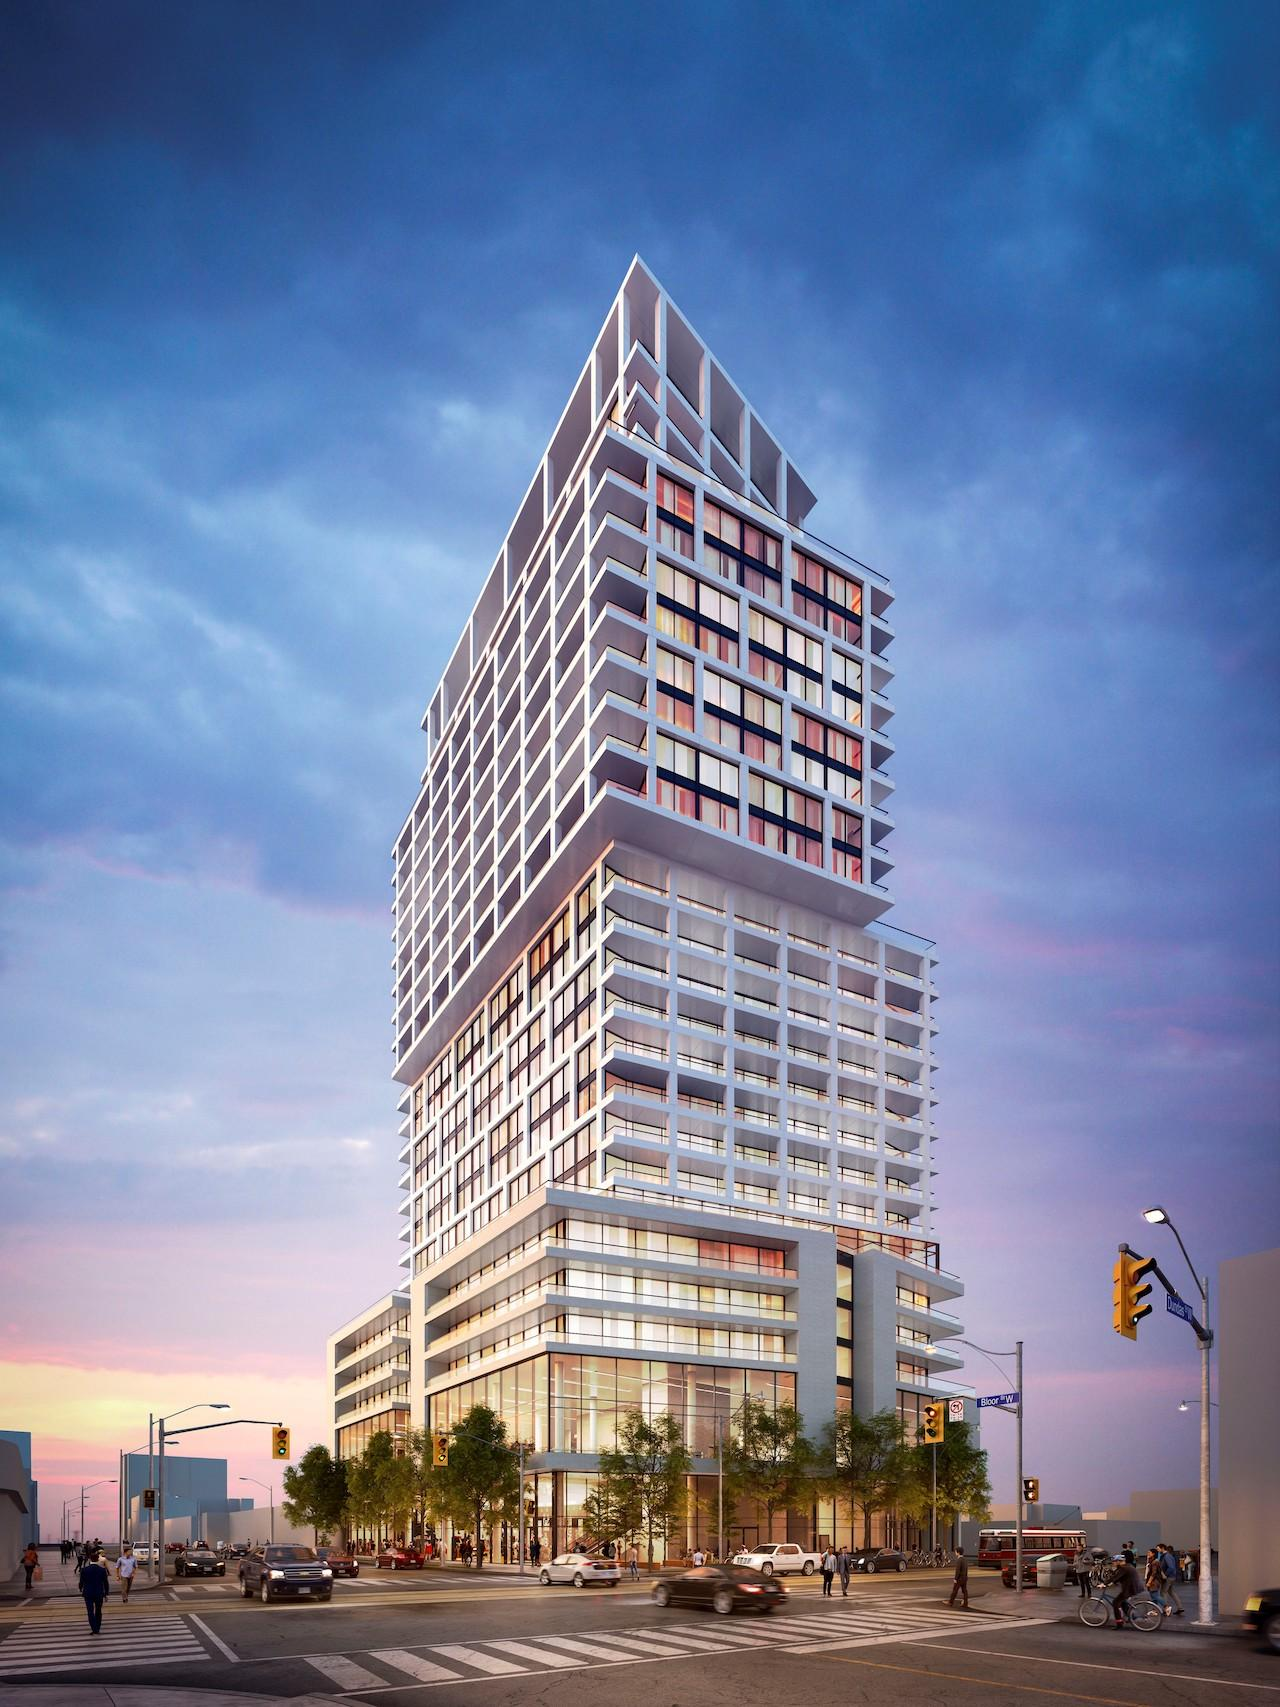 2018 Proposal, 1540 Bloor West, Toronto, designed by Core Architects for Trinity and Hazelview